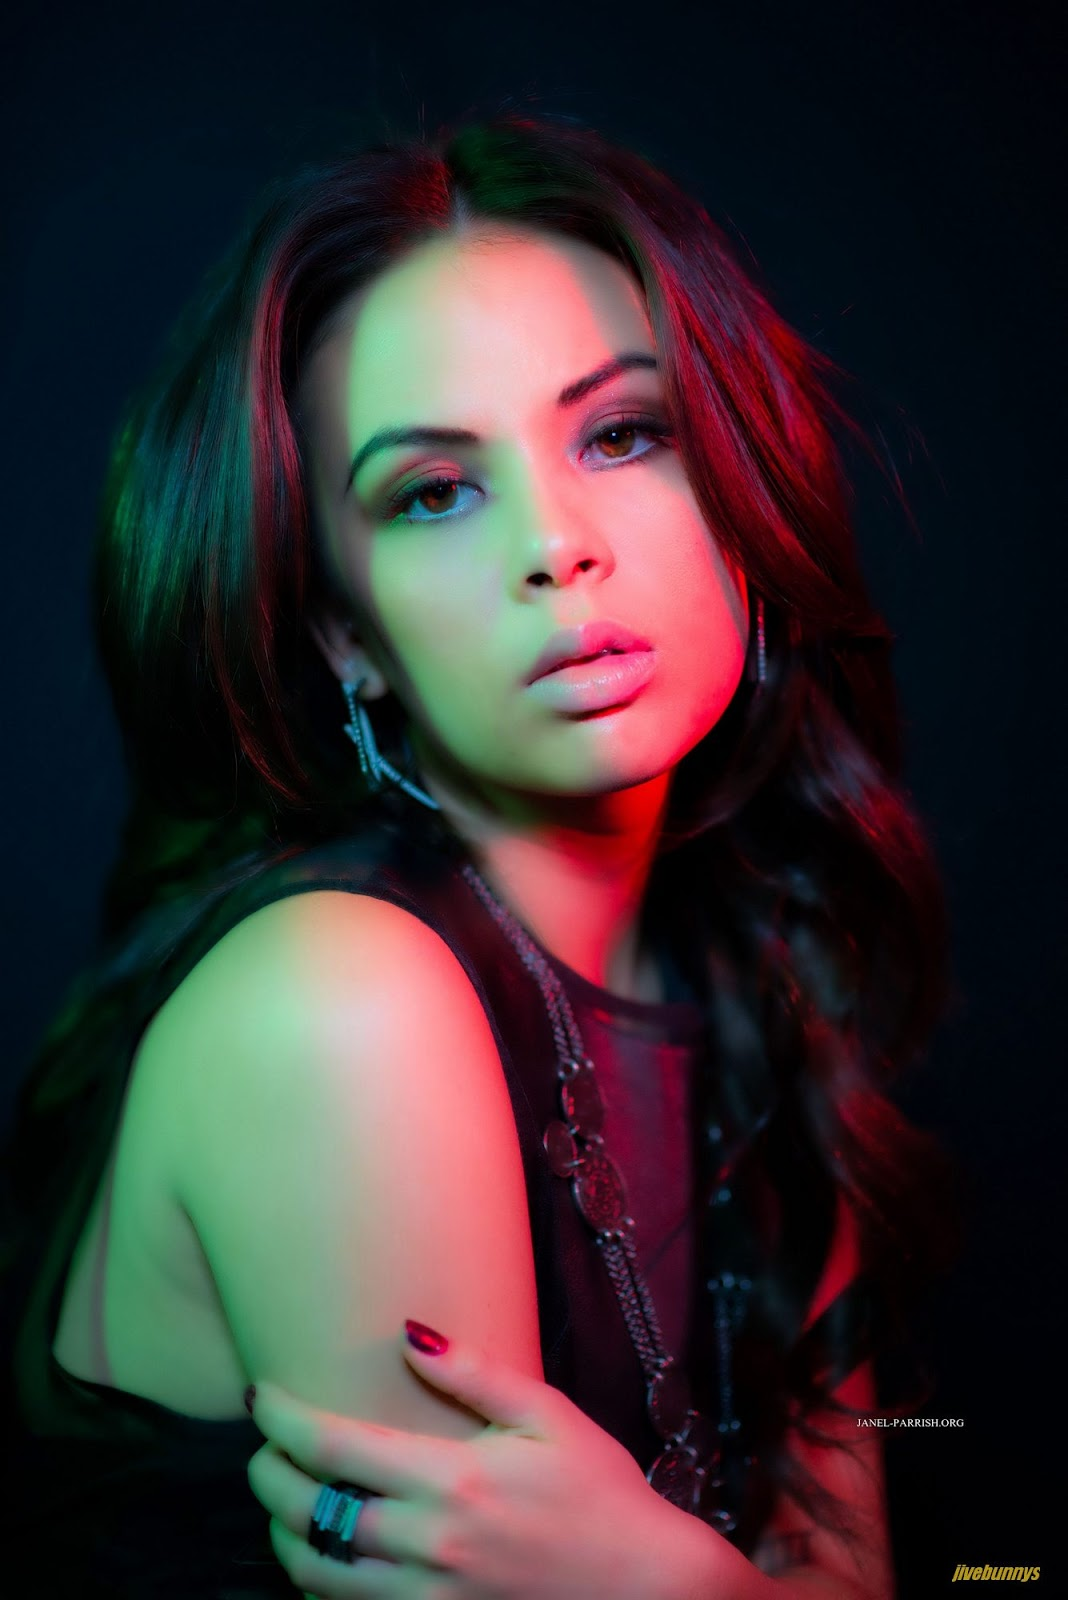 Jivebunnys Female Celebrity Picture Gallery: Janel Parrish ... Jessica Alba Movies